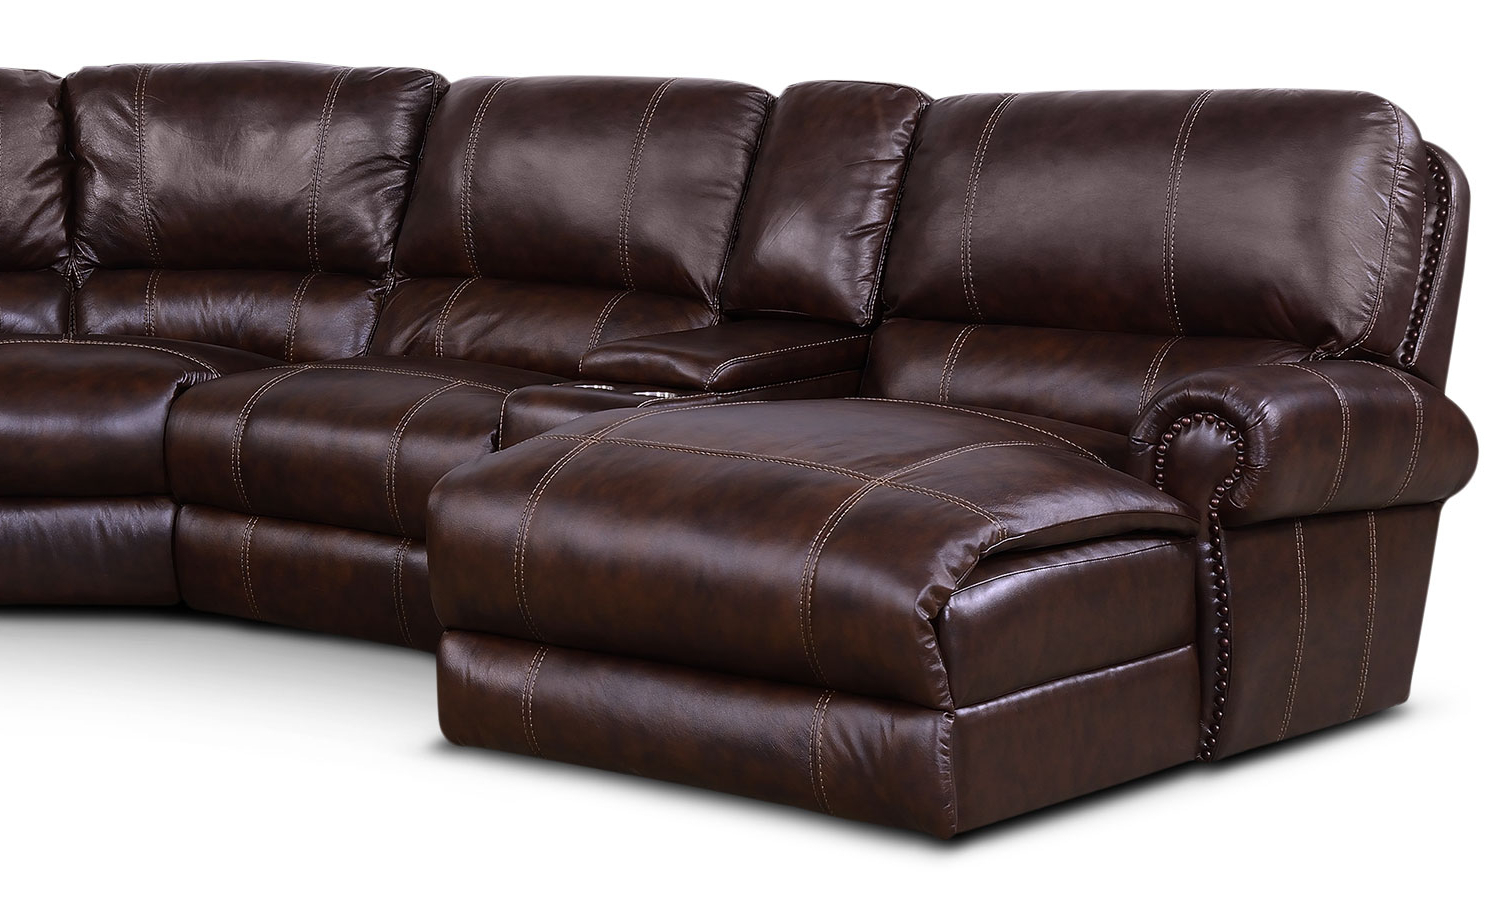 Norfolk Chocolate 6 Piece Sectionals With Raf Chaise For Widely Used Dartmouth 6 Piece Power Reclining Sectional With 2 Reclining Seats (View 14 of 20)